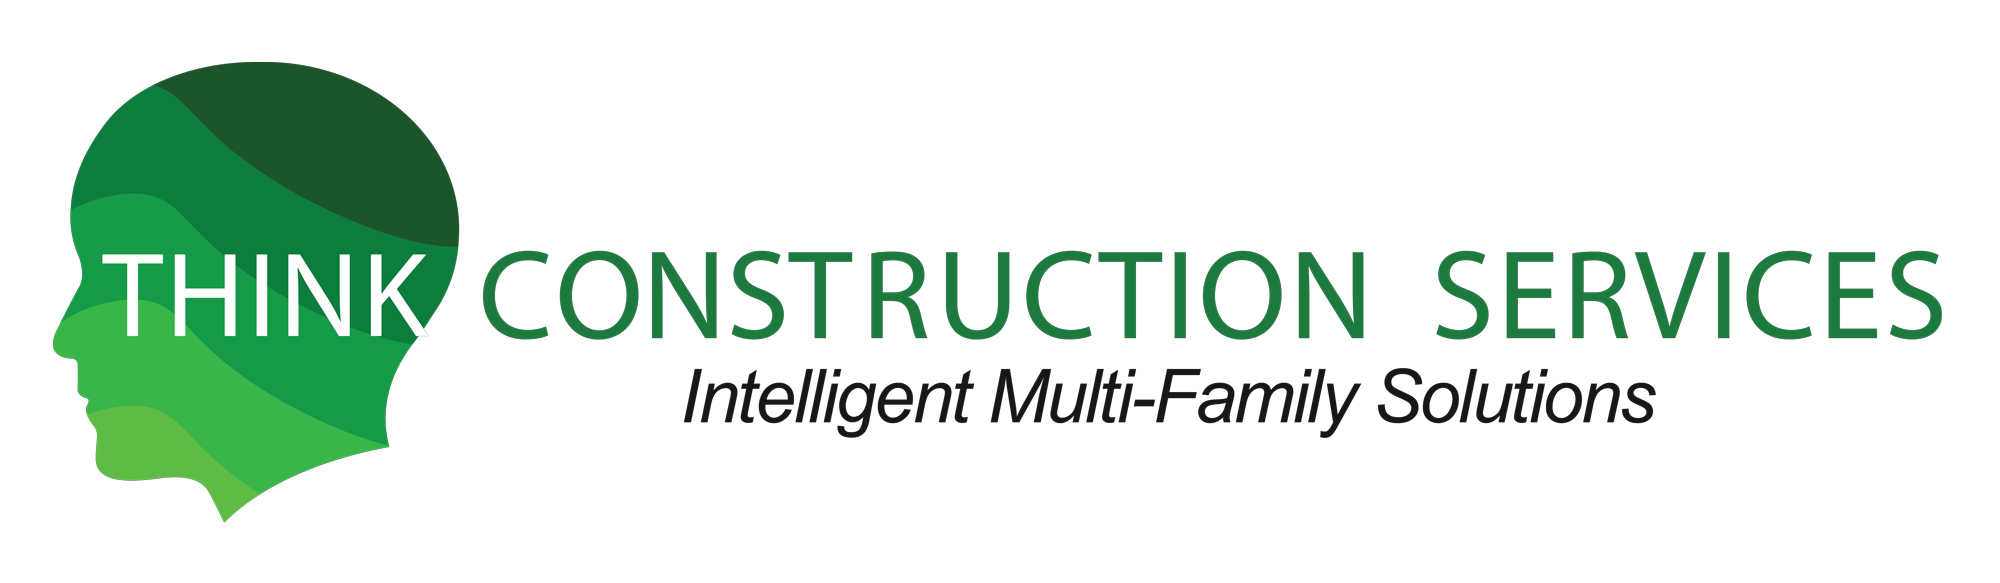 Think Construction Services Logo